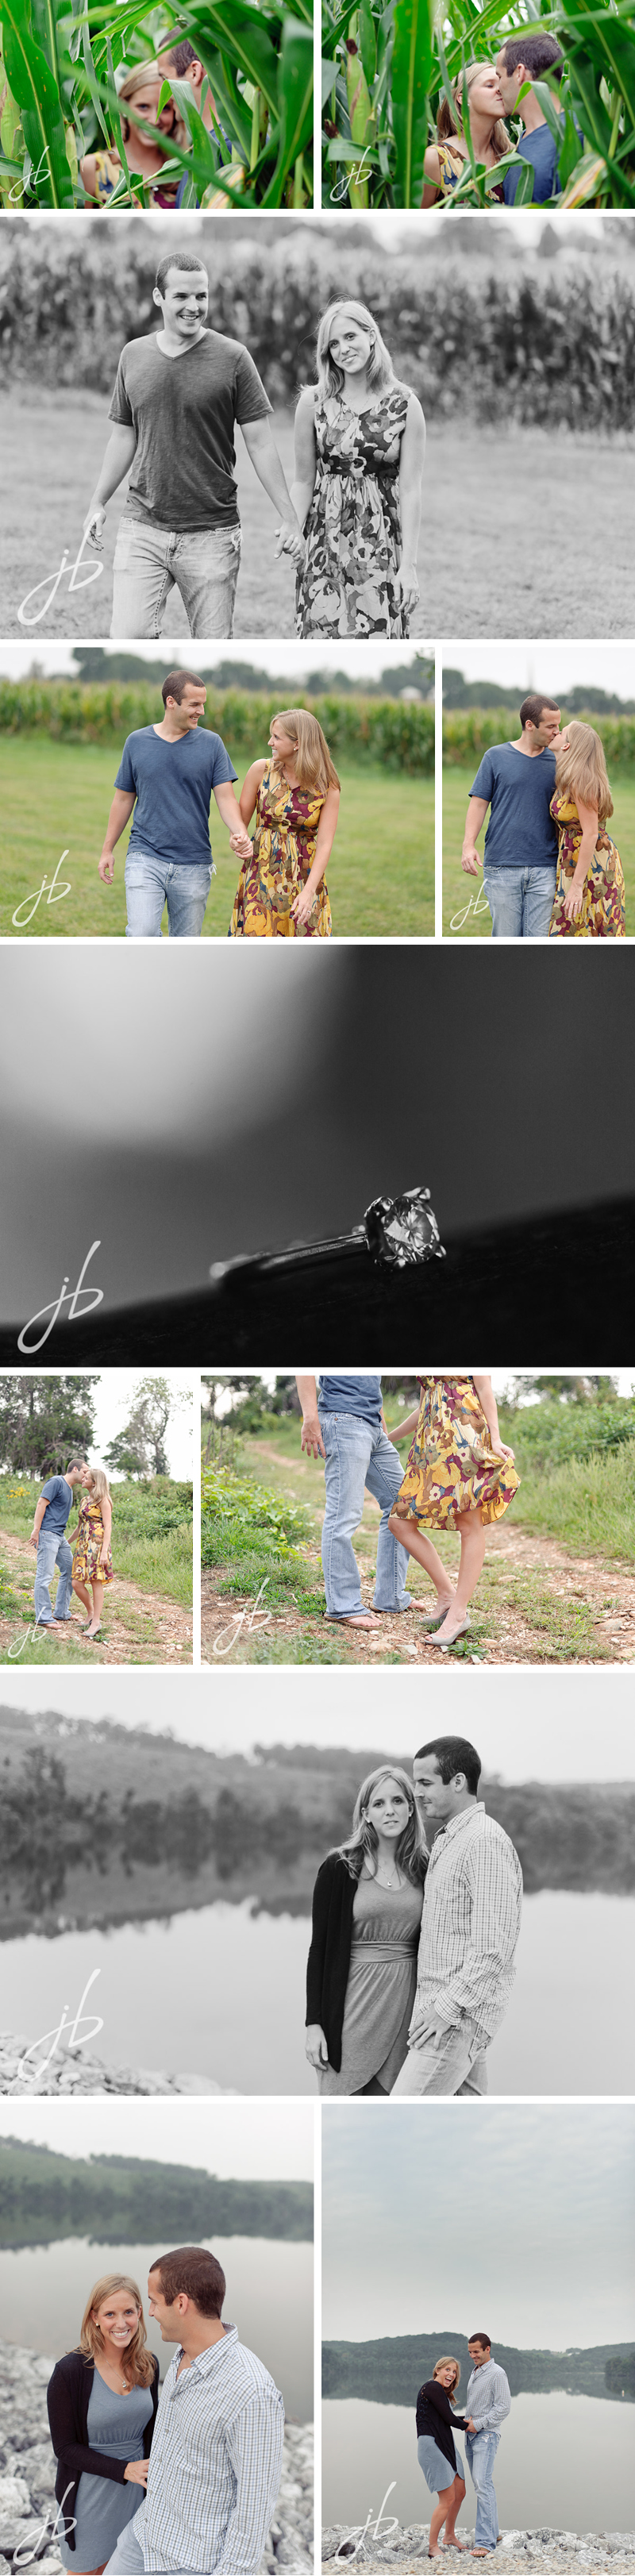 York PA wedding photography by Jeremy Bischoff Photography 003